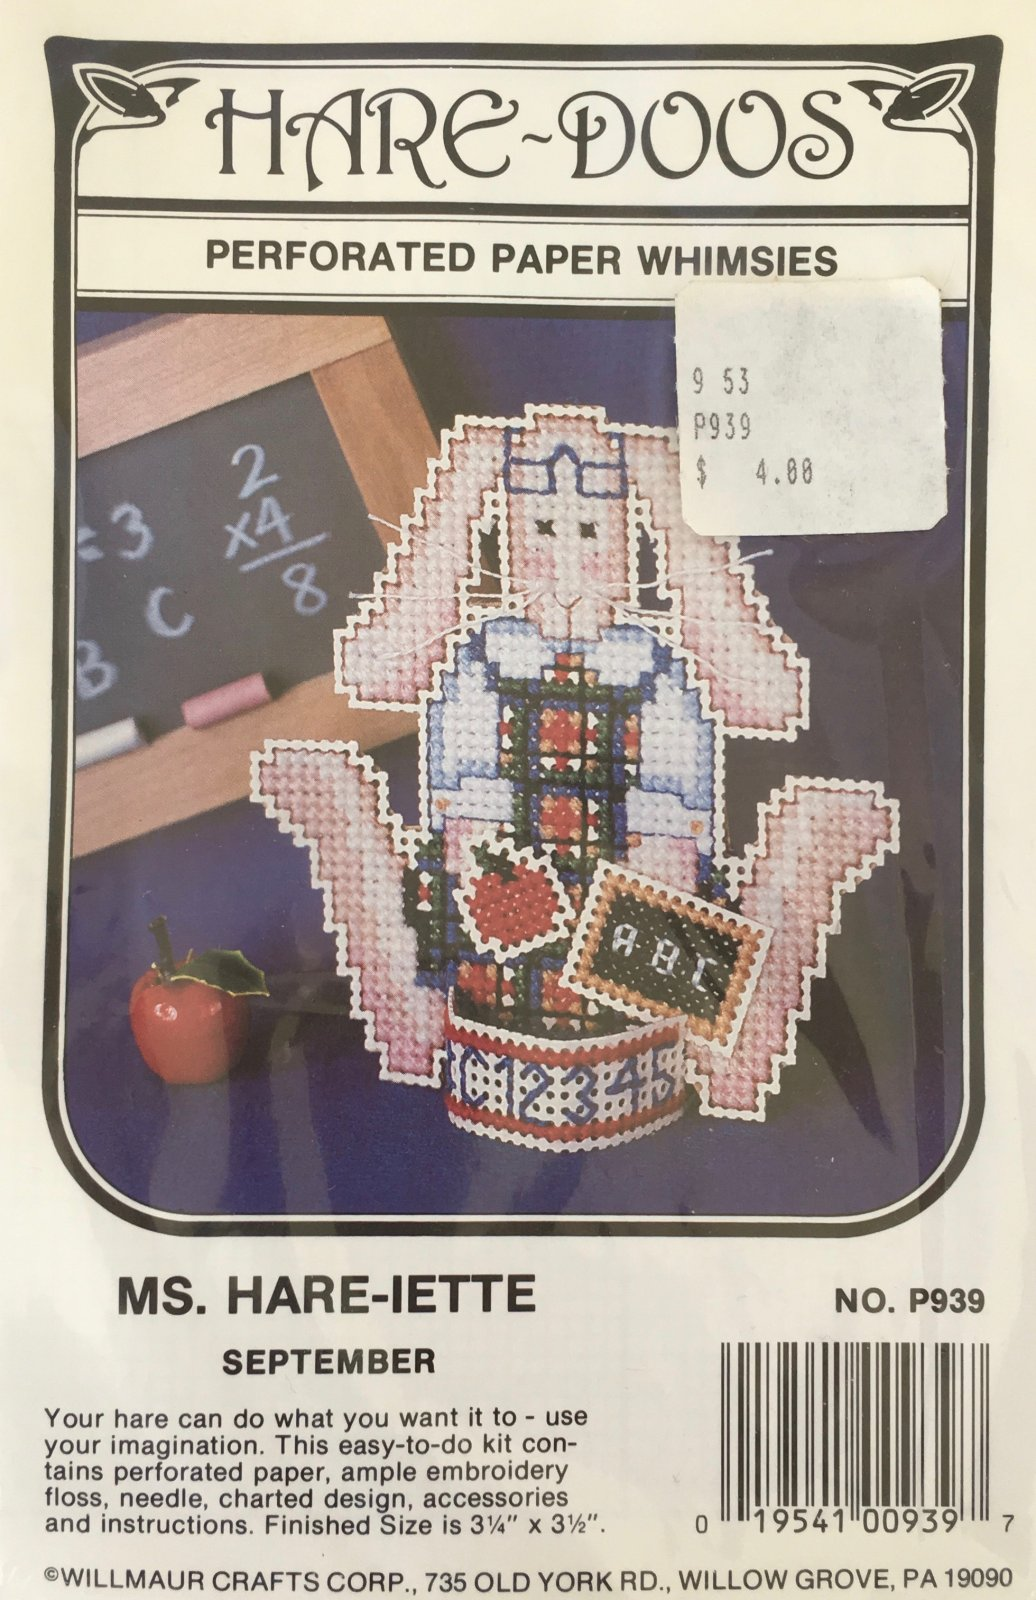 Astor Place: Hare-Doos Ms. Hare-iette Kit September P939